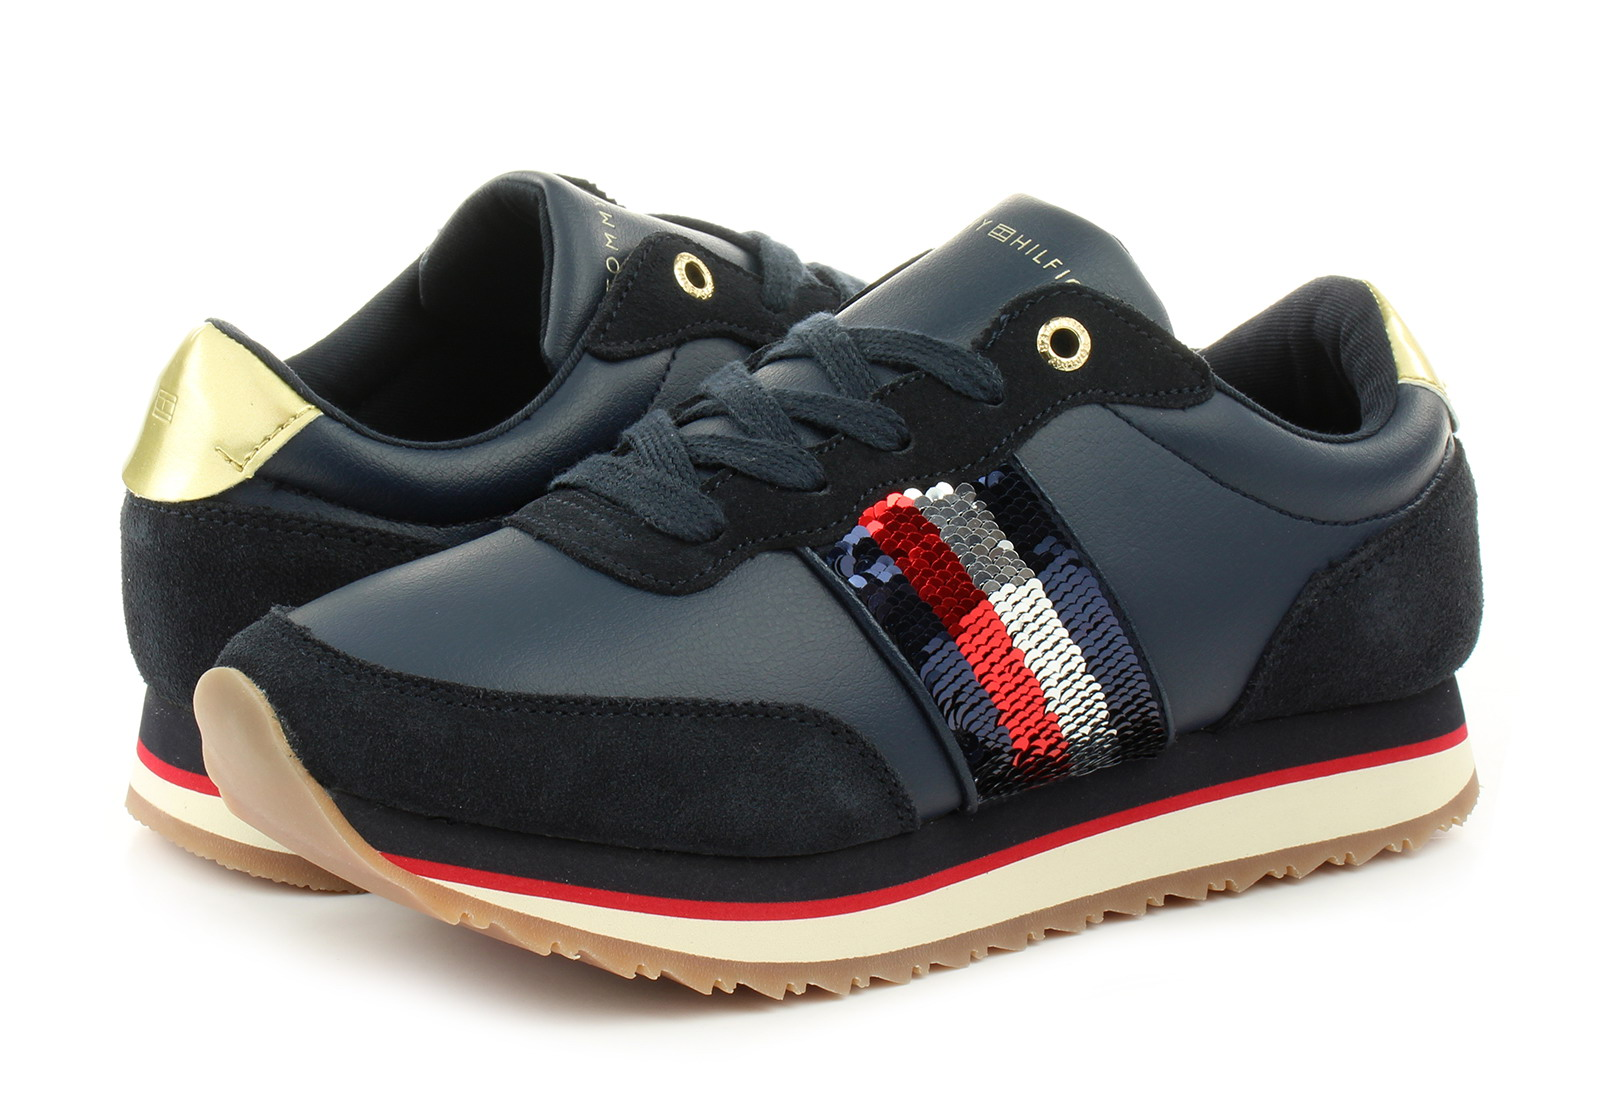 97b7f1a48d Tommy Hilfiger Cipő - Angel 8c1 - 18H-3703-403 - Office Shoes ...